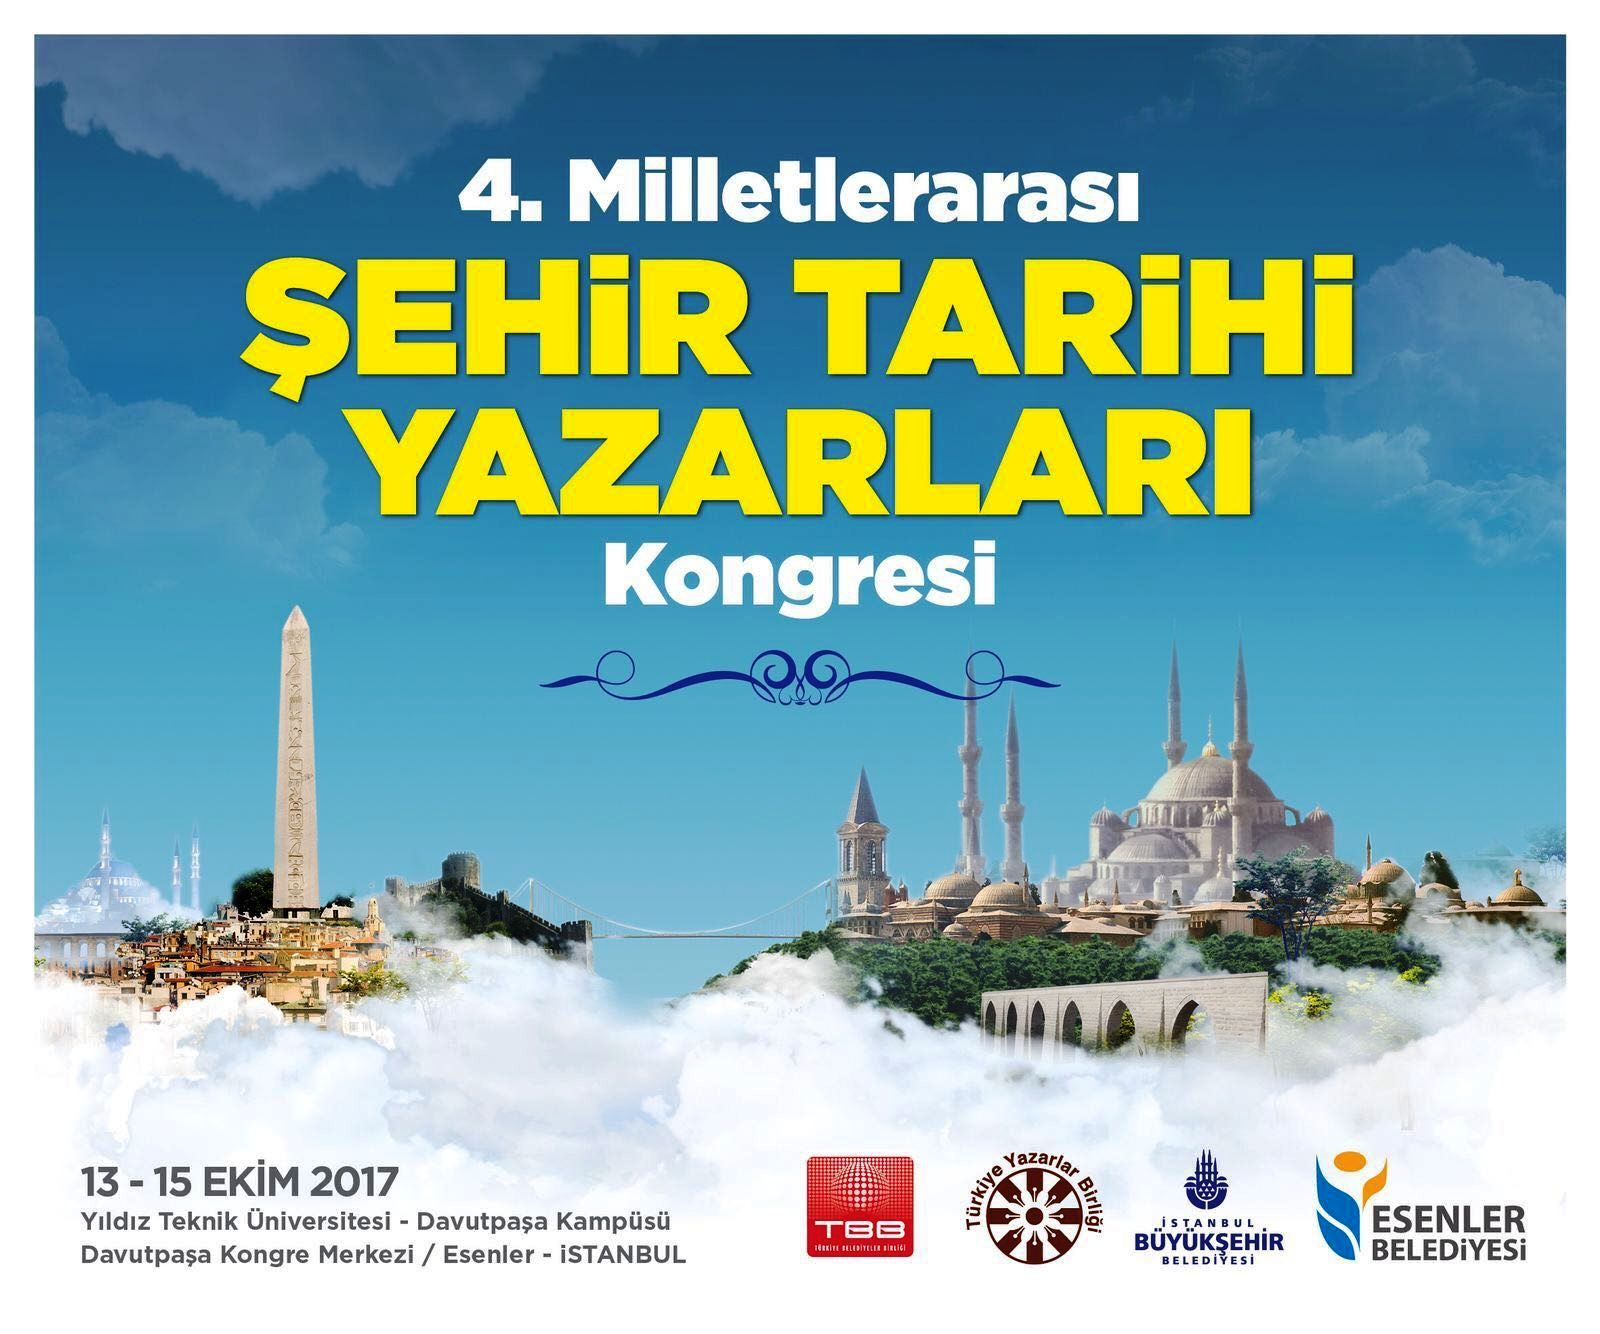 Tyb Istanbul Subesi On Twitter Istanbul Movie Posters Sports And Politics